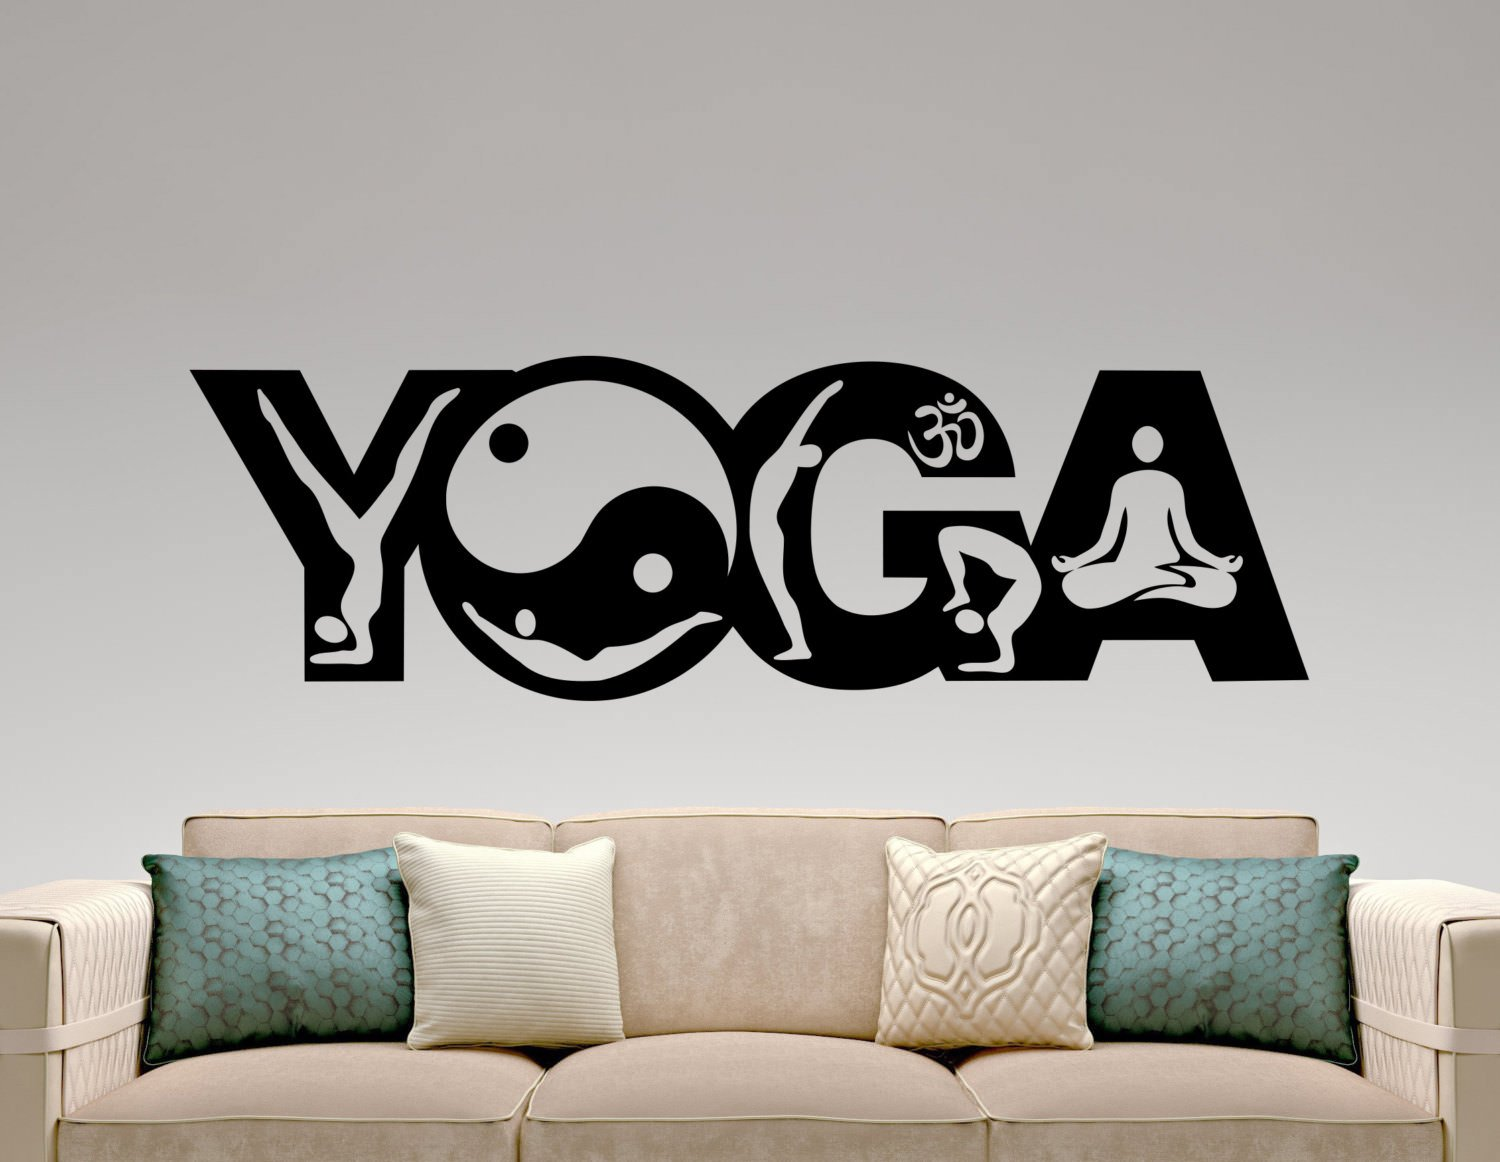 Buy cvanu yoga wall sticker vinyl decal home interior design yoga studio decor bedroom wall decal murals logo design waterproof stickers online at low